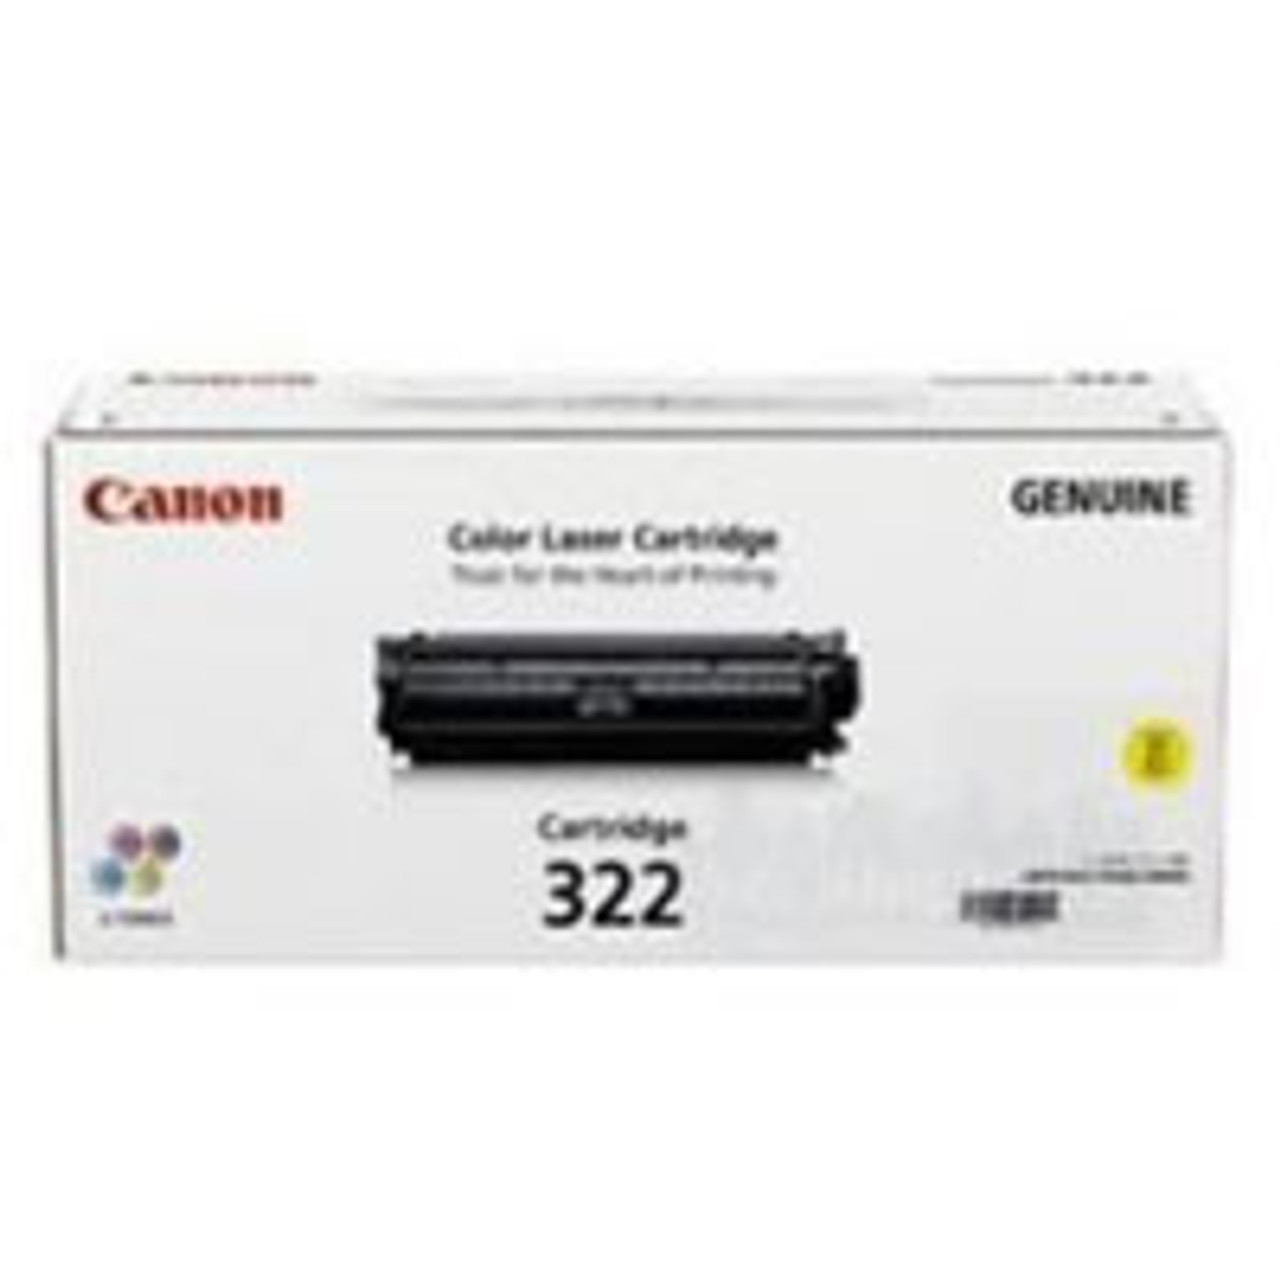 Image for Canon 332 Yellow Toner Cartridge 6,400 pages Yellow CX Computer Superstore